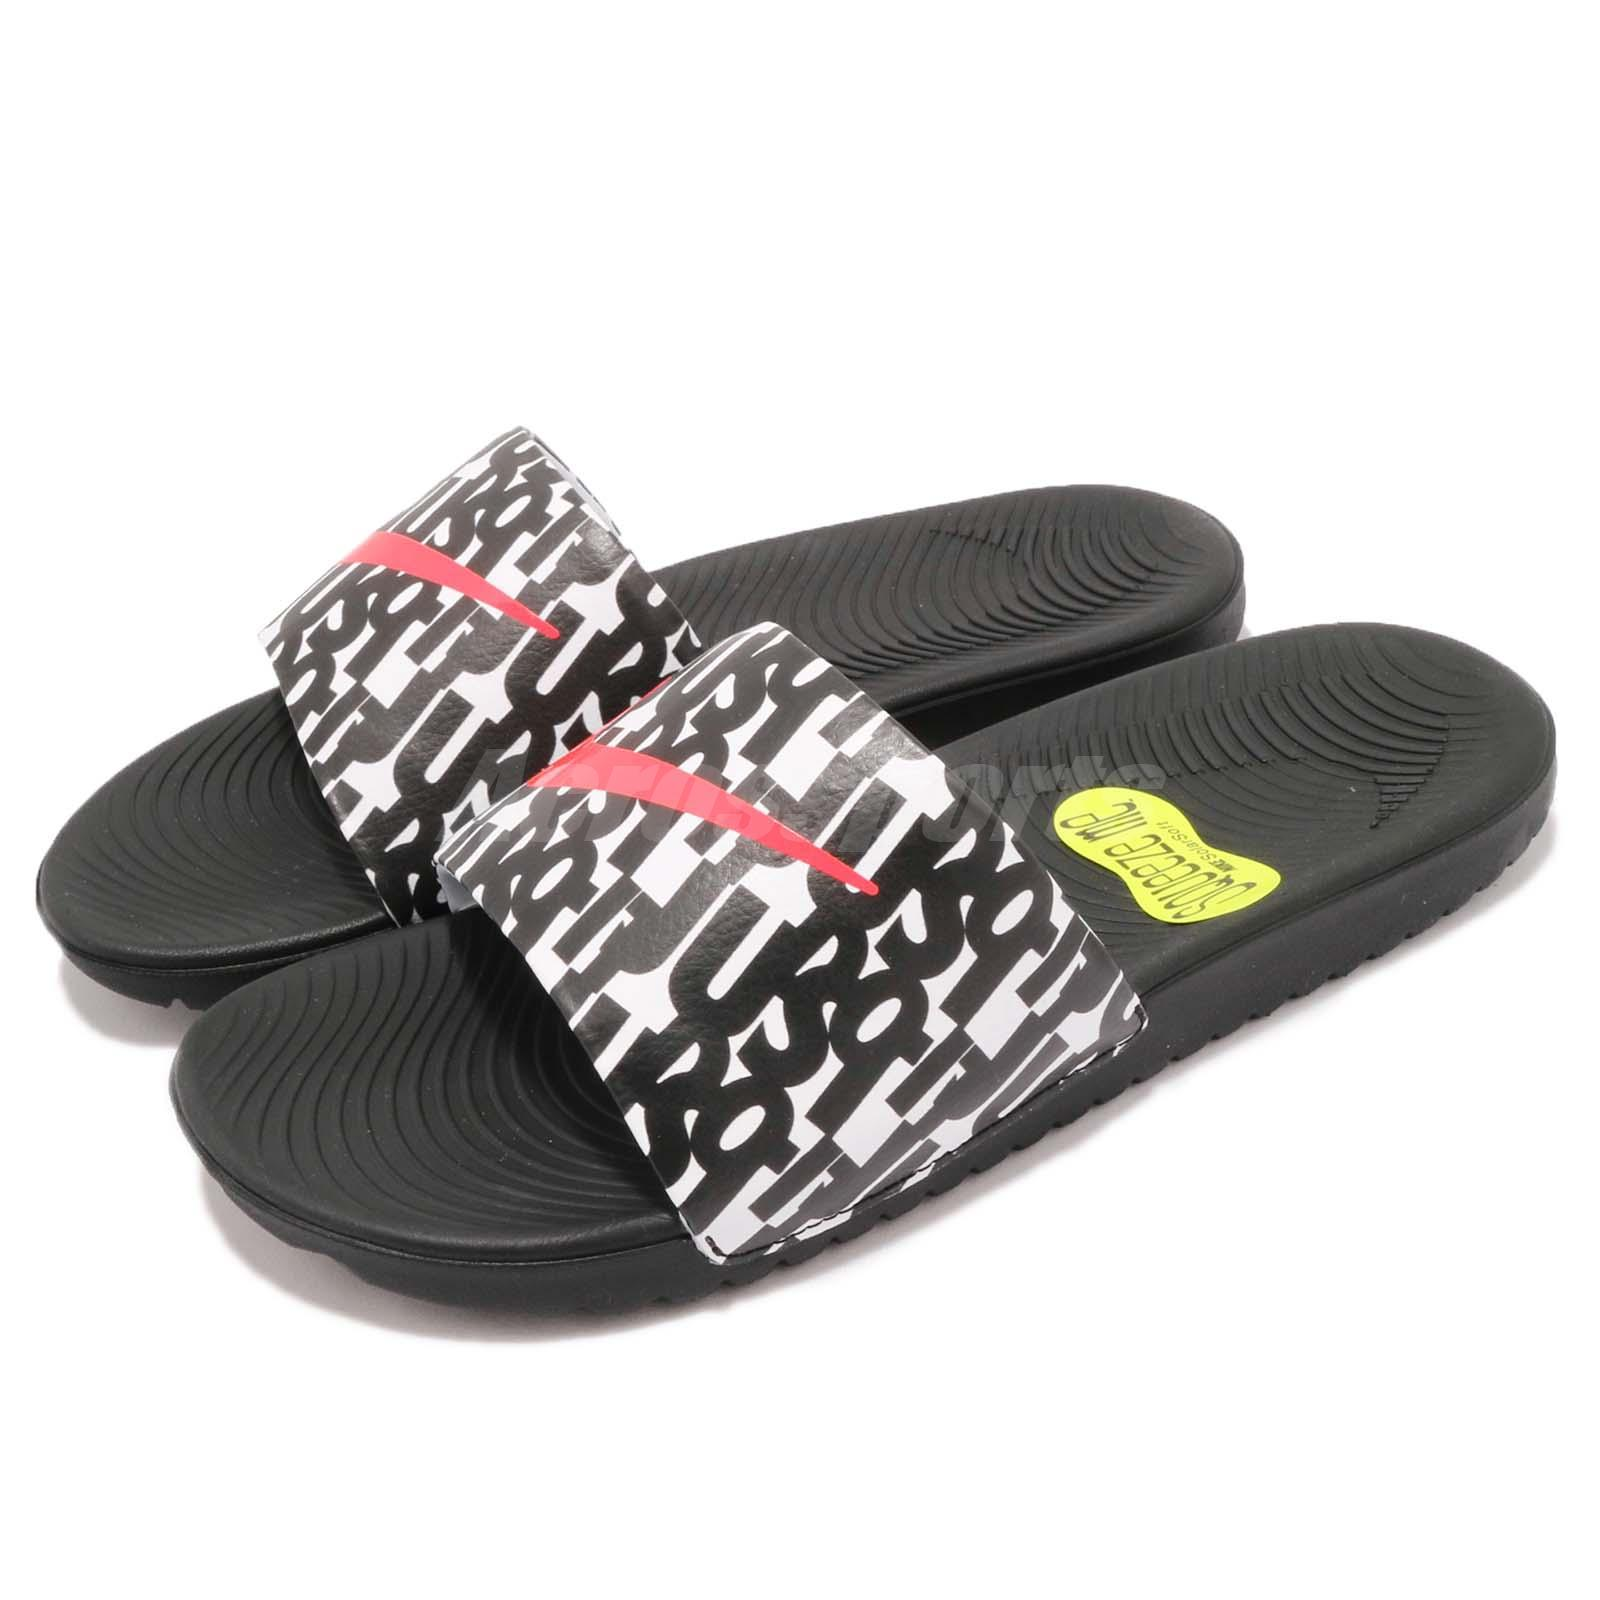 5bcdc3db4e83da Details about Nike Kawa Slide Print GS PS Just Do It Black Kid Youth Sports  Sandal 819358-007